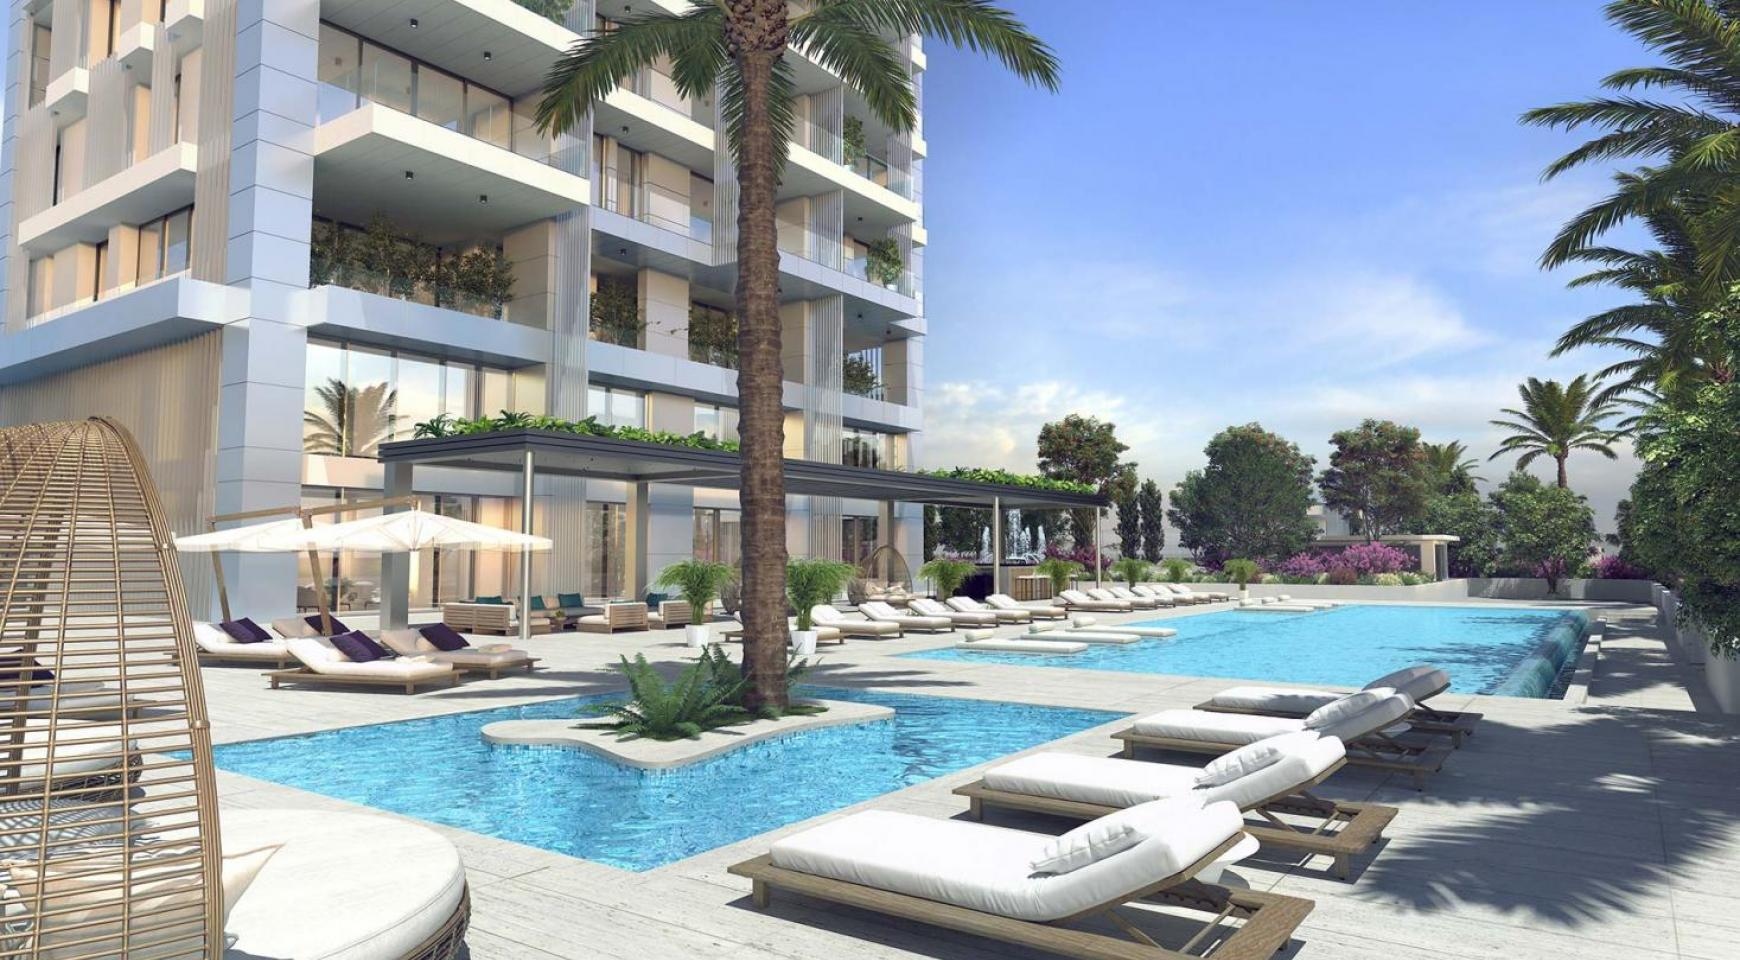 Spacious One Bedroom Apartment with Sea Views in a Luxury Complex - 13